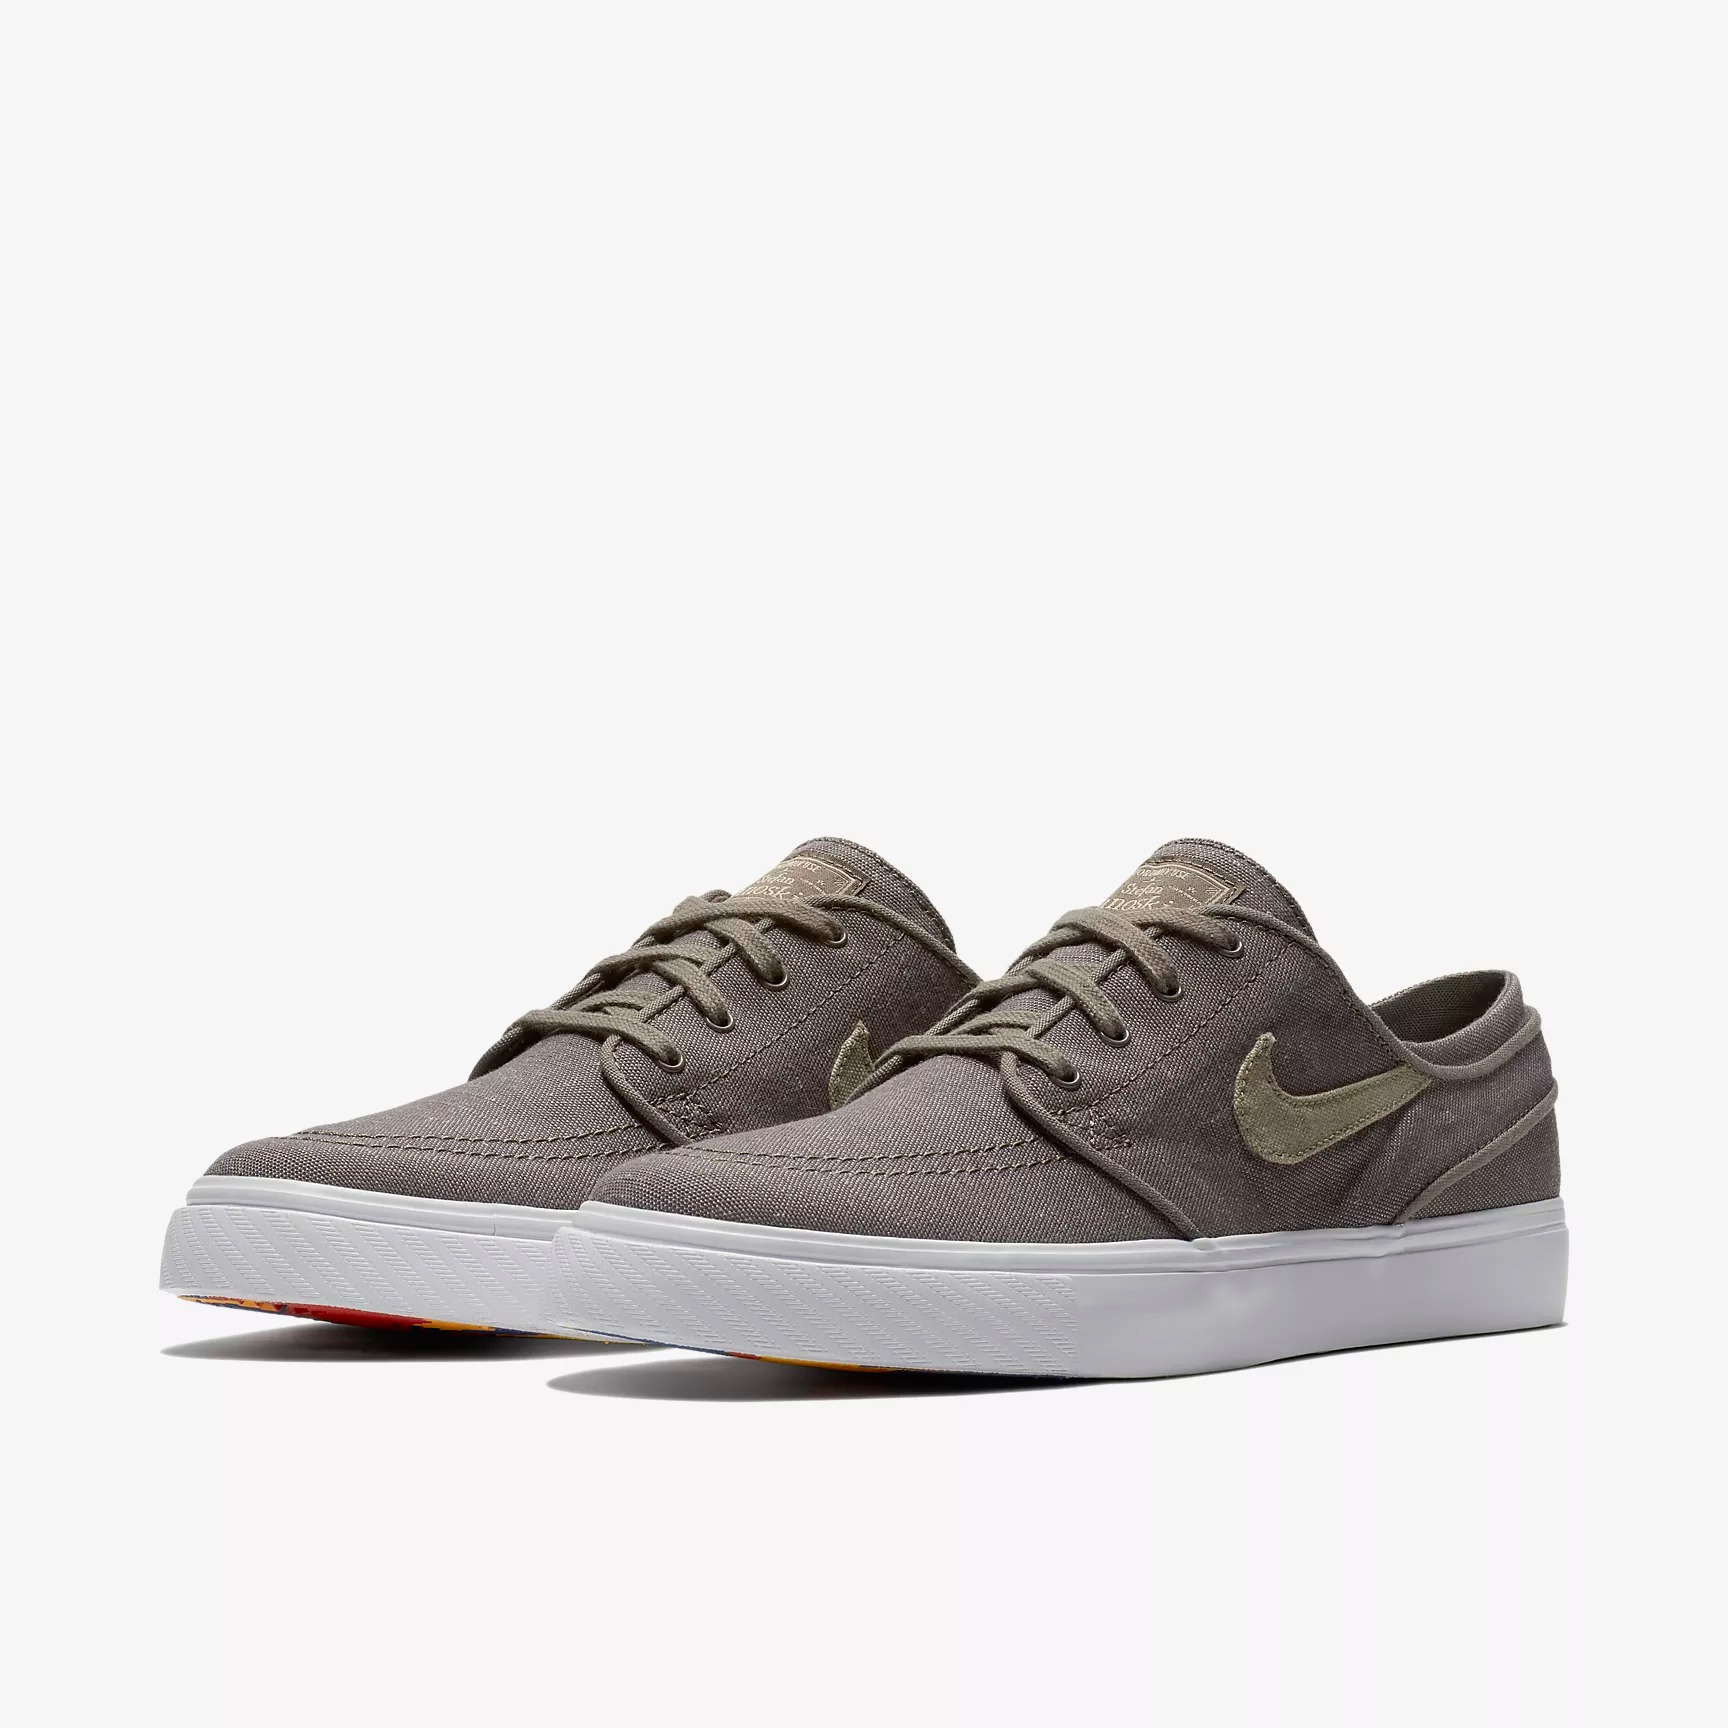 5a6bd6c6697e Nike SB Zoom Stefan Janoski Canvas Deconstructed Sneakers - SPORT SHOES  Lifestyle Shoes